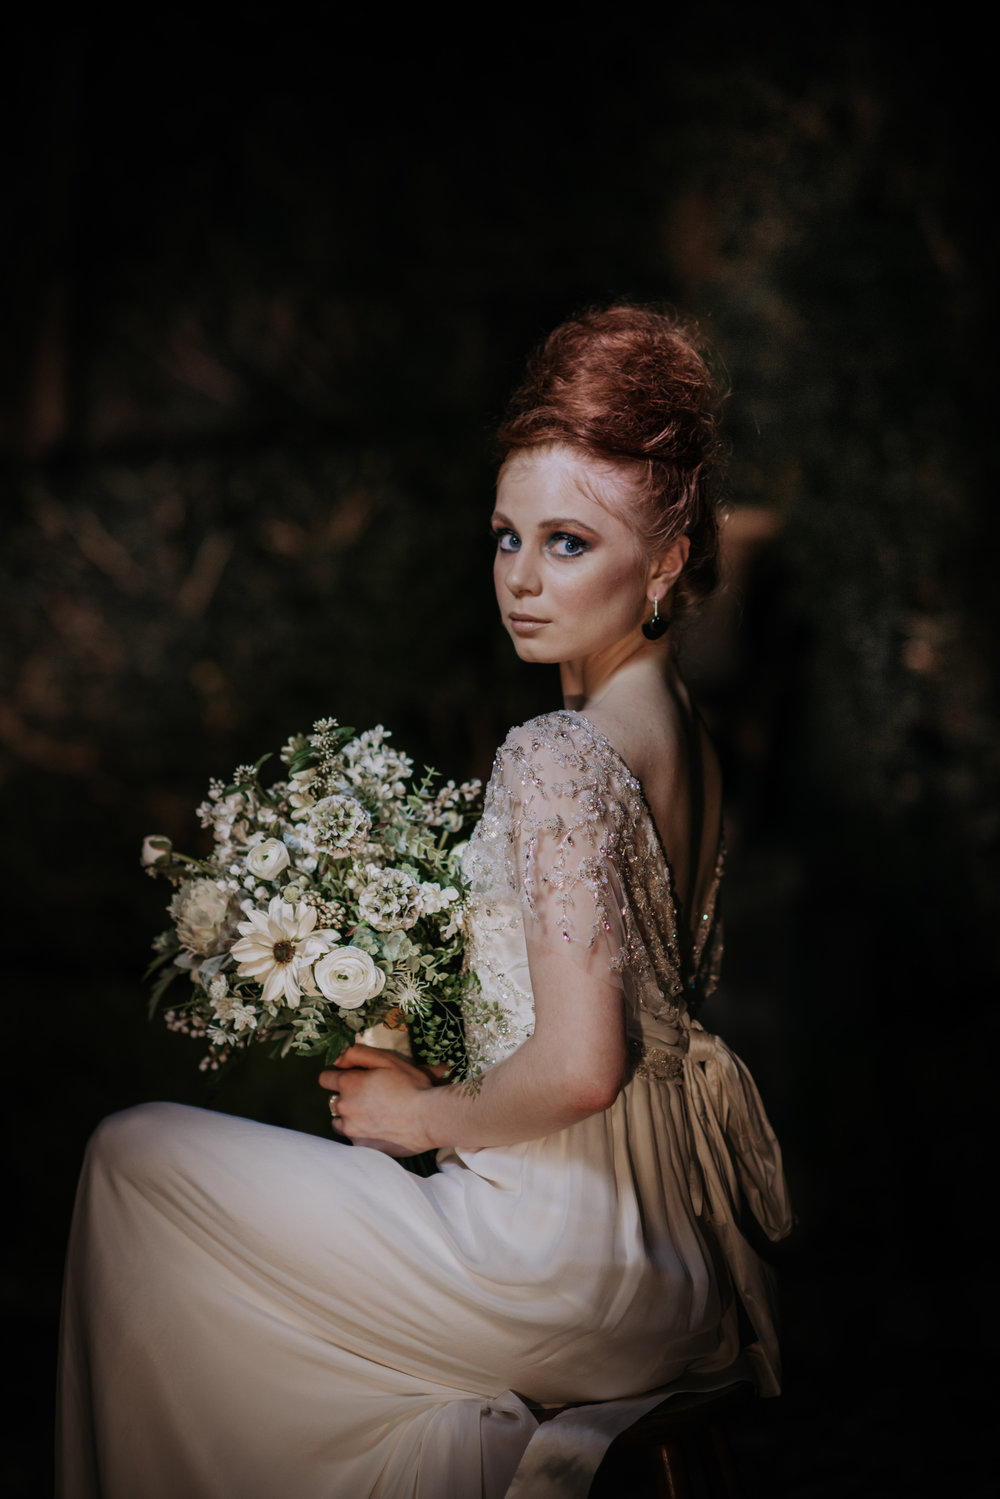 LOVELENSCAPES PHOTOGRAPHY X ANNA CAMPBELL BRIDAL X LEMAE MAKEUP ARTISTRY X BLOOMING LOVELY BOUQUETS X ERIN LIGHTFOOT X LITTLE WHITE COUTURE • 38.jpg